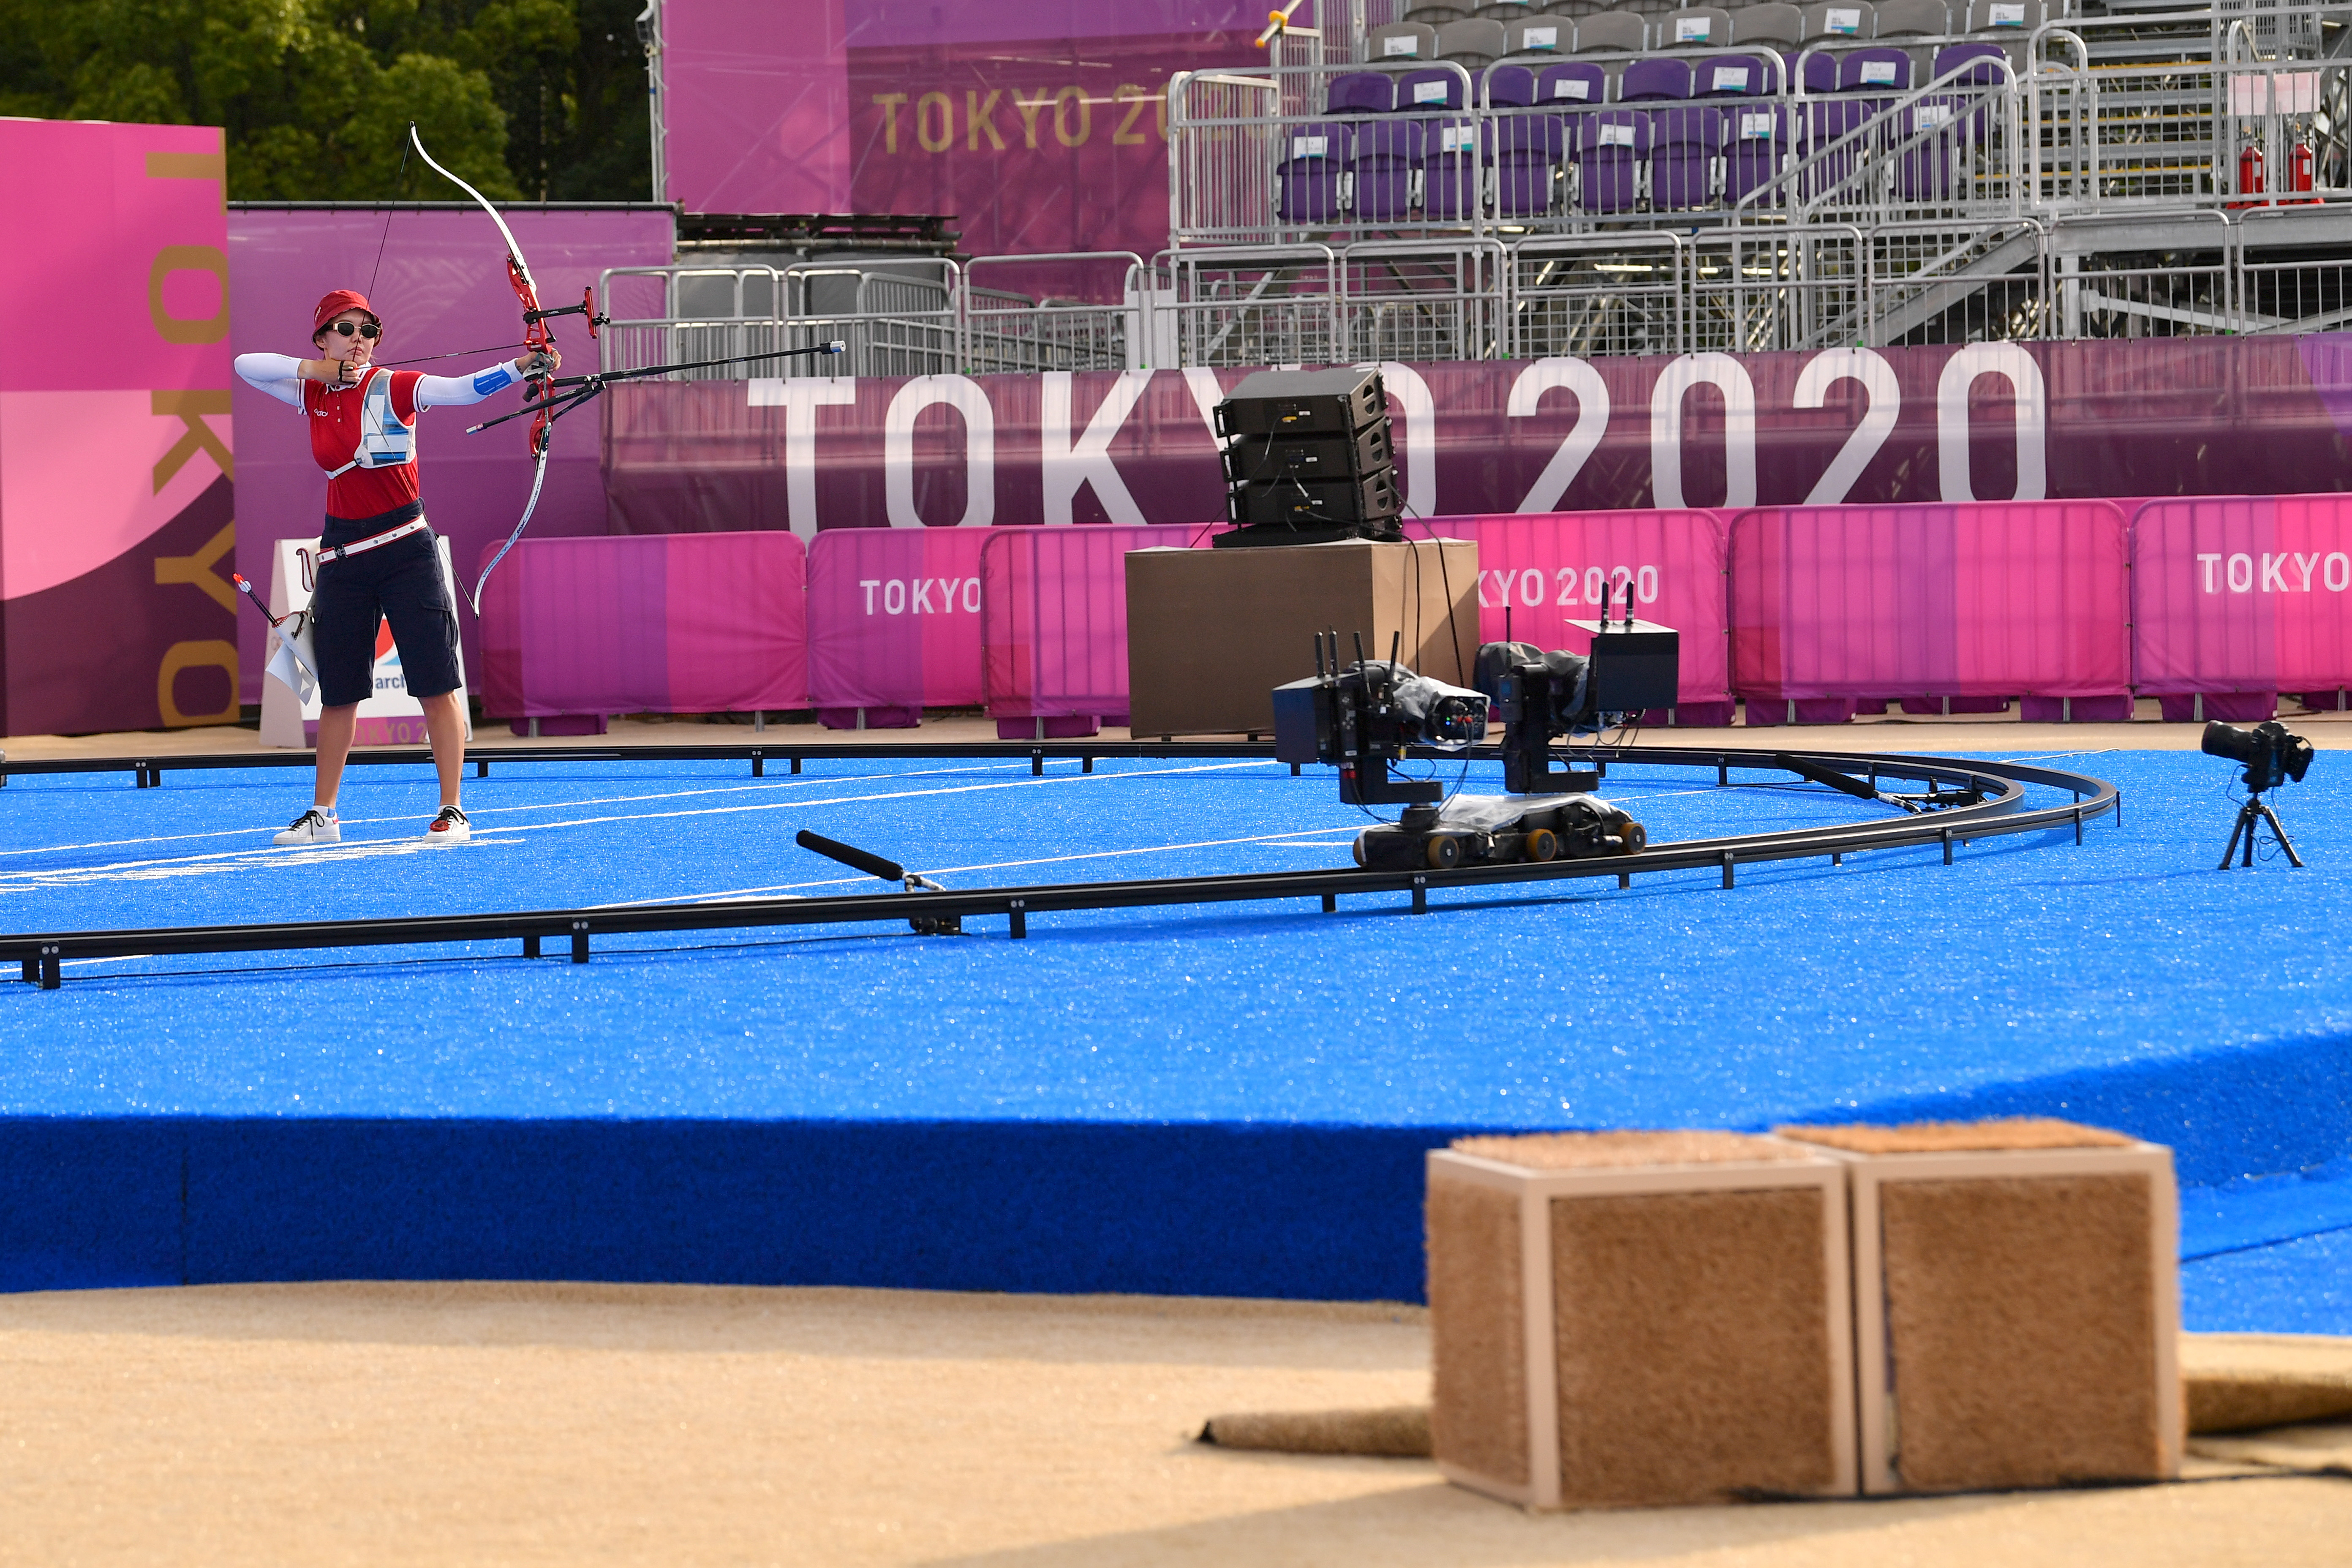 Cameras positioned 12 metres before the archery shooting line that live track the heart beats per minute of over 100 consenting archers are seen at the Yumenoshima Archery Field, during the Tokyo 2020 Olympic Games, Japan, July 29, 2021. Picture taken July 29, 2021. REUTERS/Clodagh Kilcoyne